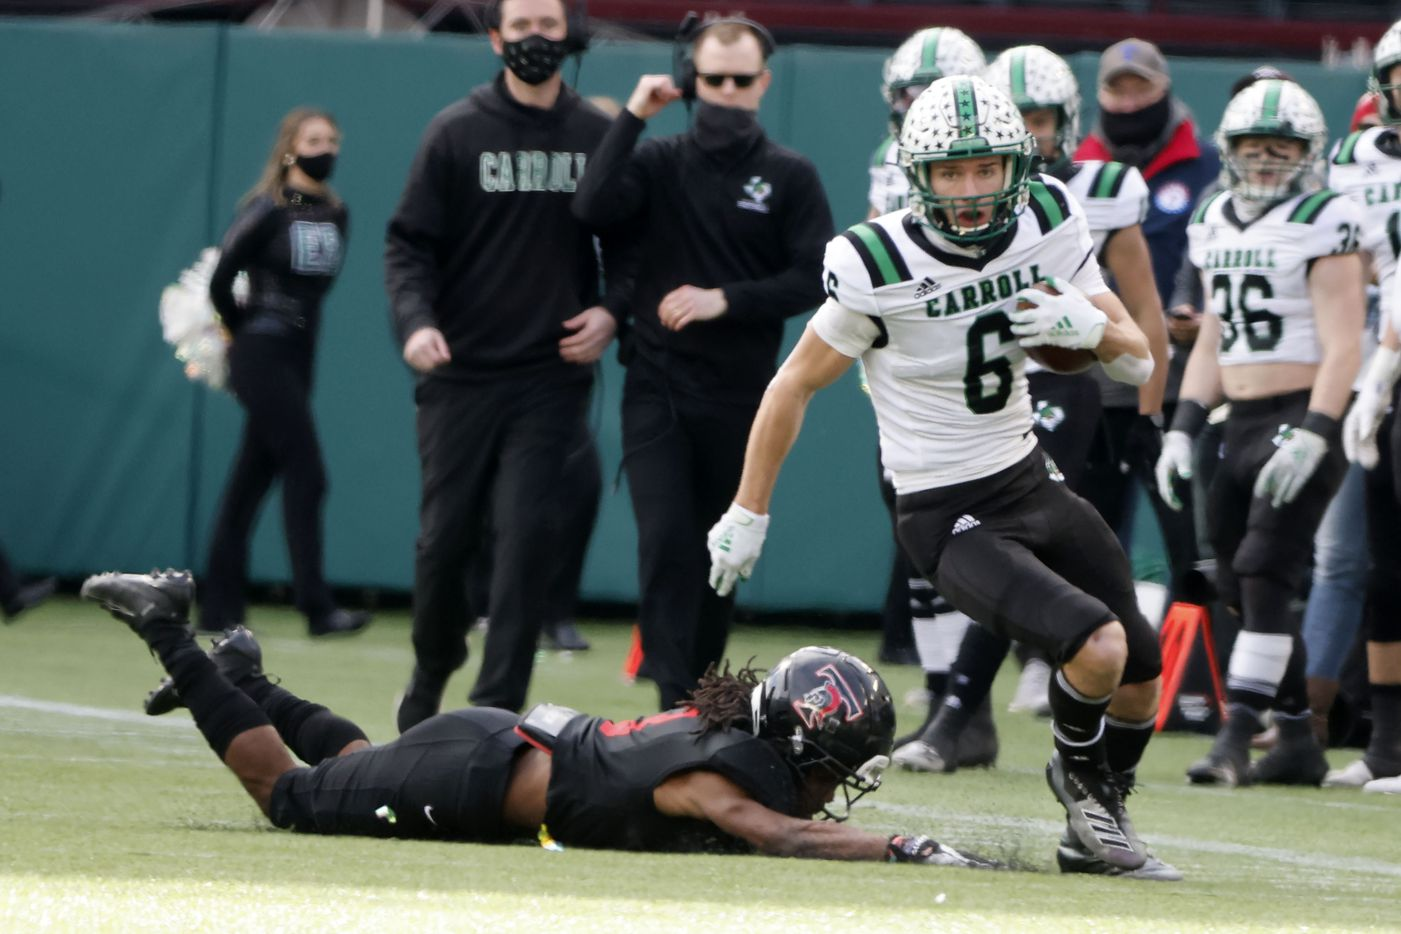 Southlake Carroll receiver Landon Samson (6) runs past Euless Trinity defender Cameron Andrews (3) during the Class 6A Division I Region I high school football final, in Arlington, Texas, on Jan. 2, 2020. (Michael Ainsworth/Special Contributor)